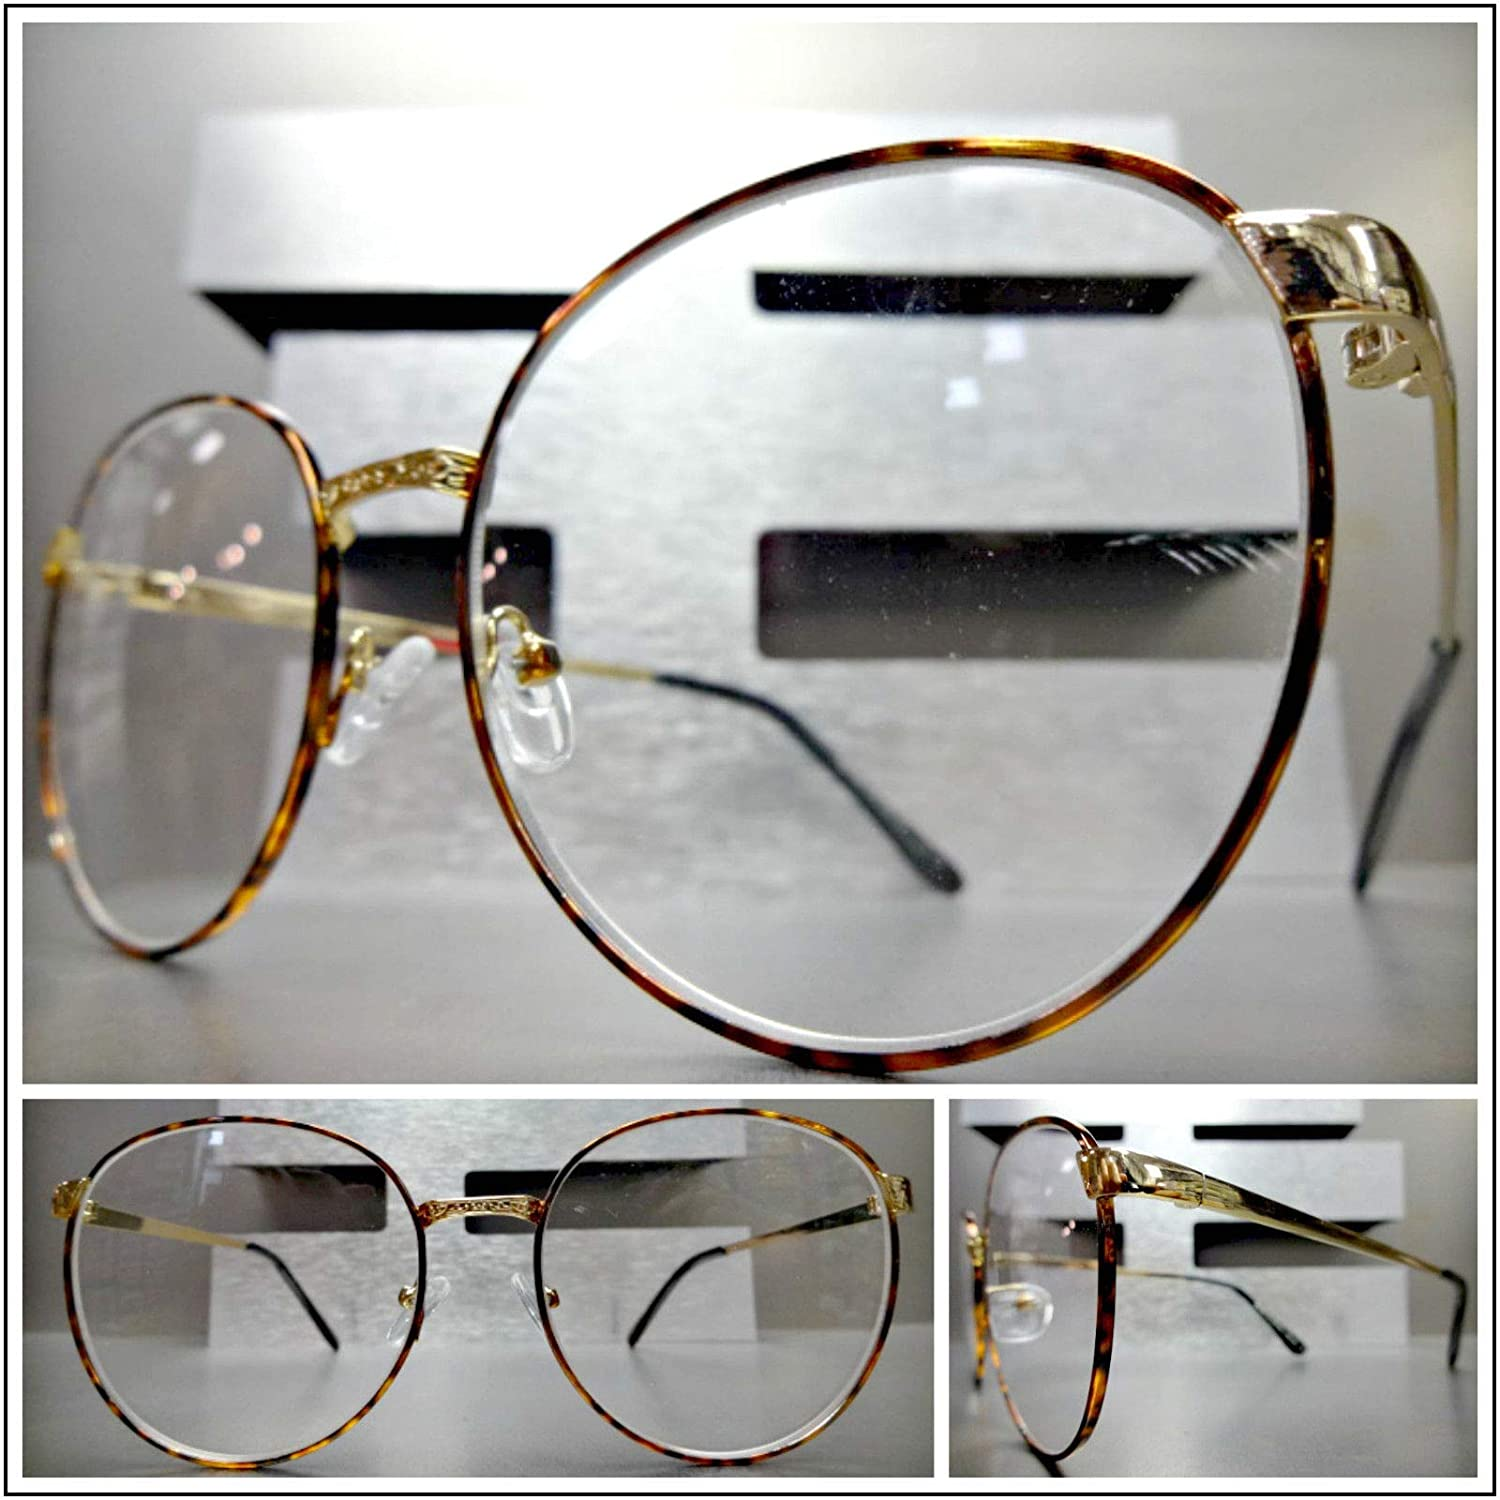 1880e253e1f Amazon.com  Oversized Exaggerated Retro Style Reading Eye Glasses Readers  Gold Oval Frame (+2.75 Strength)  Health   Personal Care